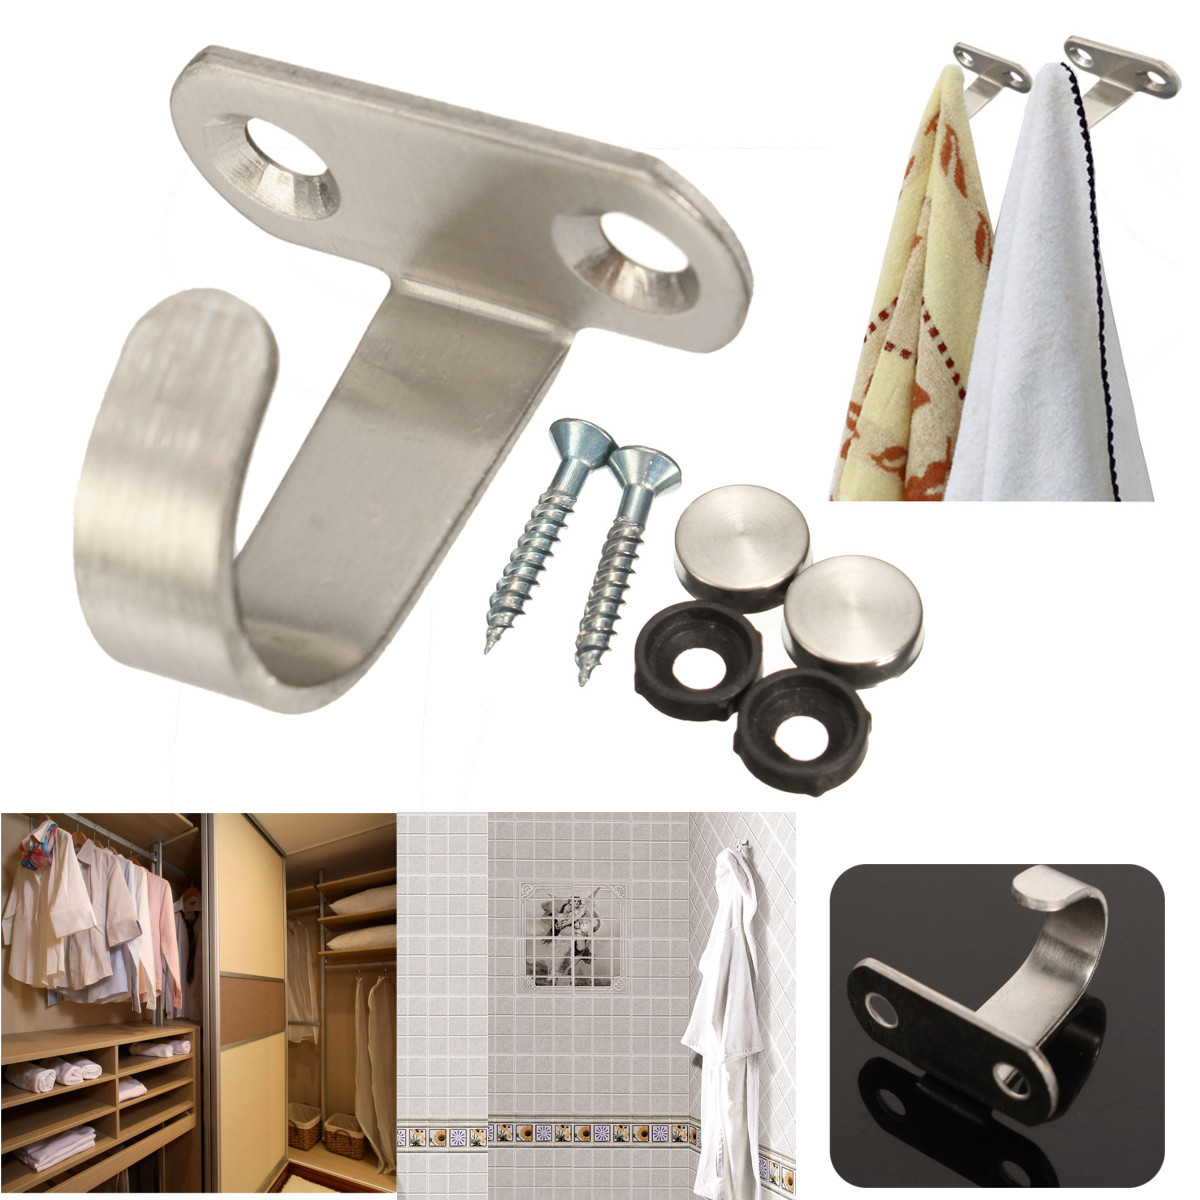 Buy Stainless Steel Robe Hook Bathroom Wardrobe Wall Mounted Clothes Sundries Hanger